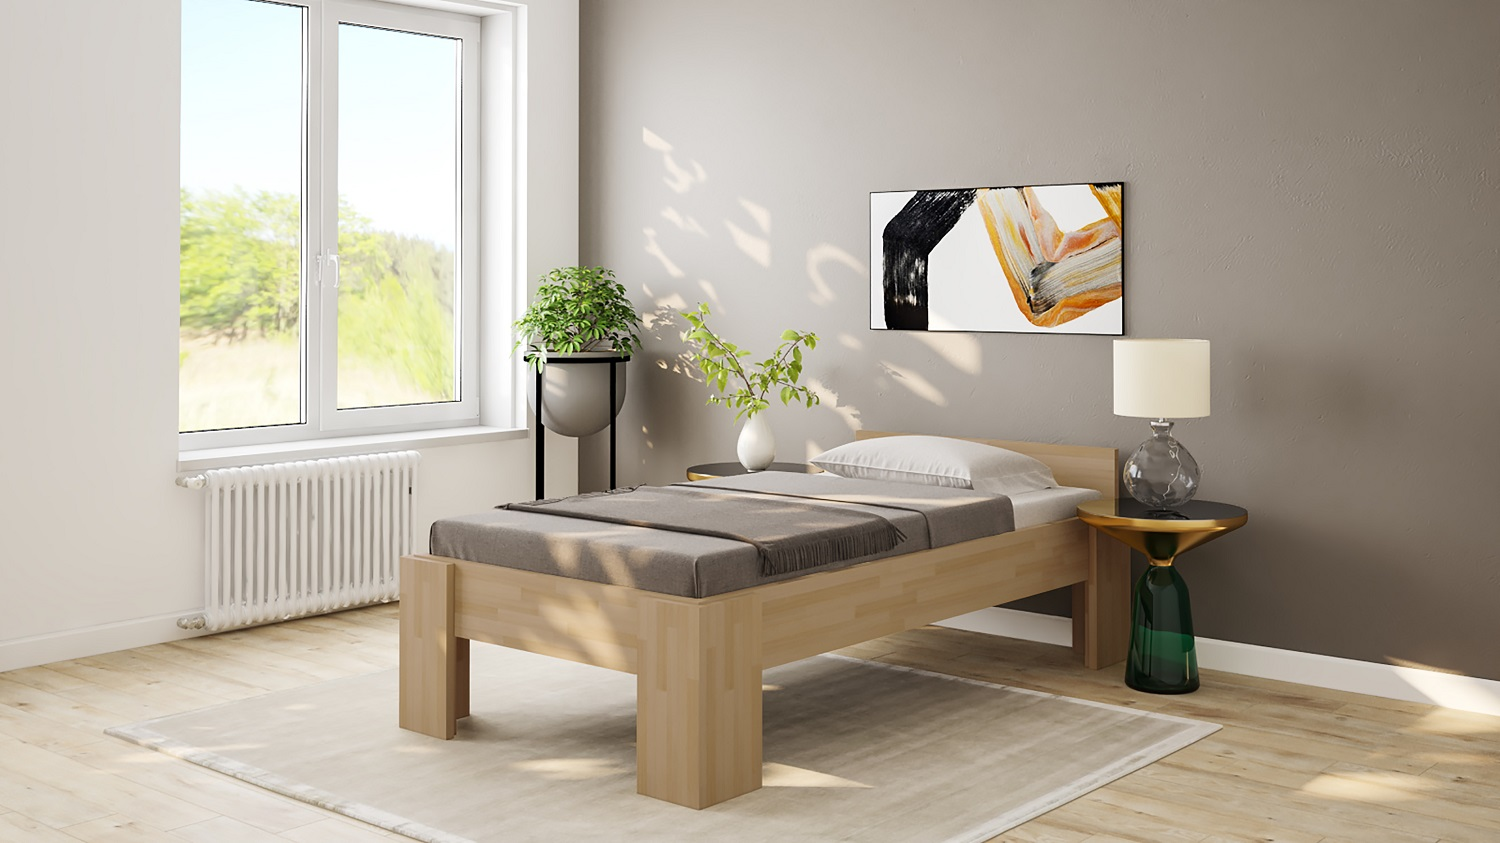 massivholzbett eiche doppelbett fuss i 140cm 200cm 40cm im onlineshop betten direkt vom. Black Bedroom Furniture Sets. Home Design Ideas